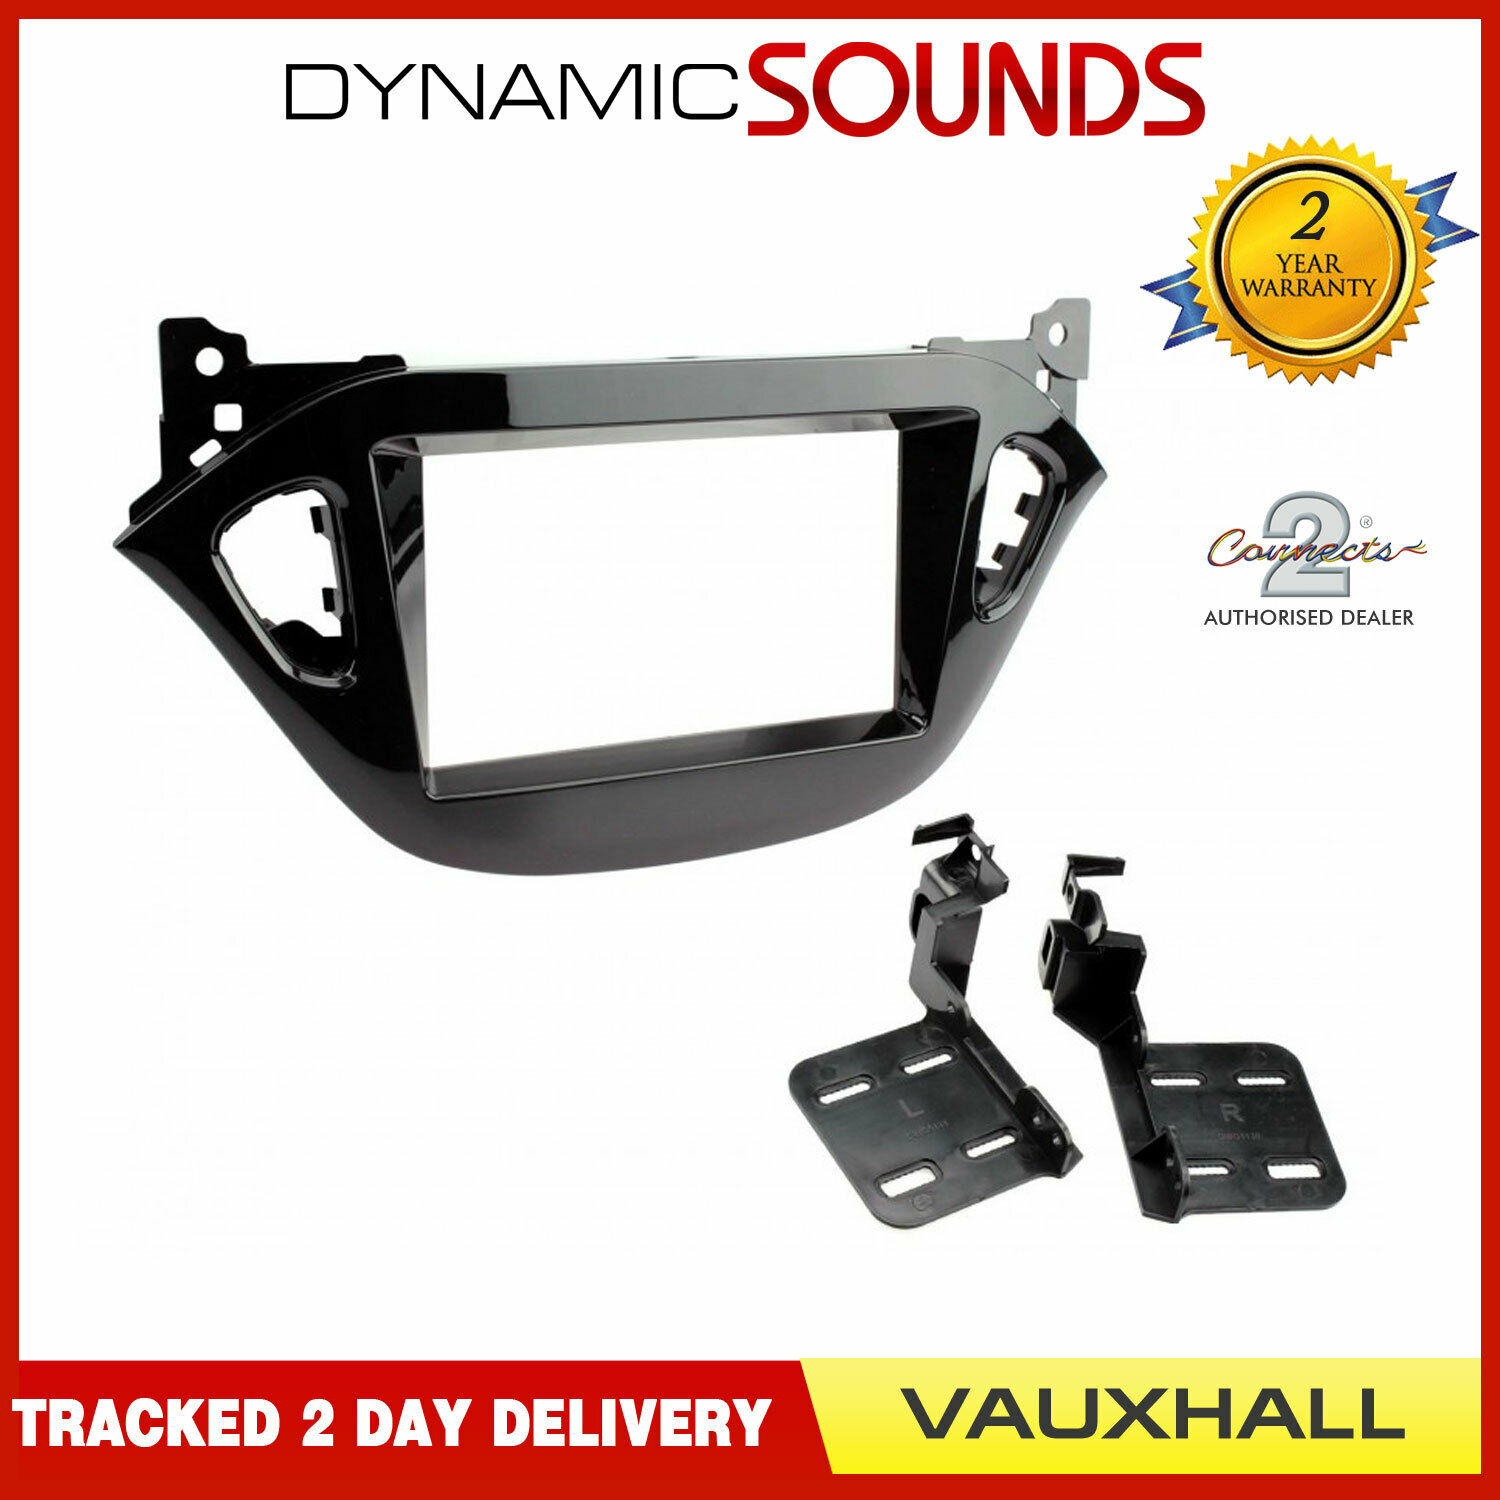 Vauxhall Piano Black Double DIN Radio Stereo Facia Fascia Adaptor Plate Panel